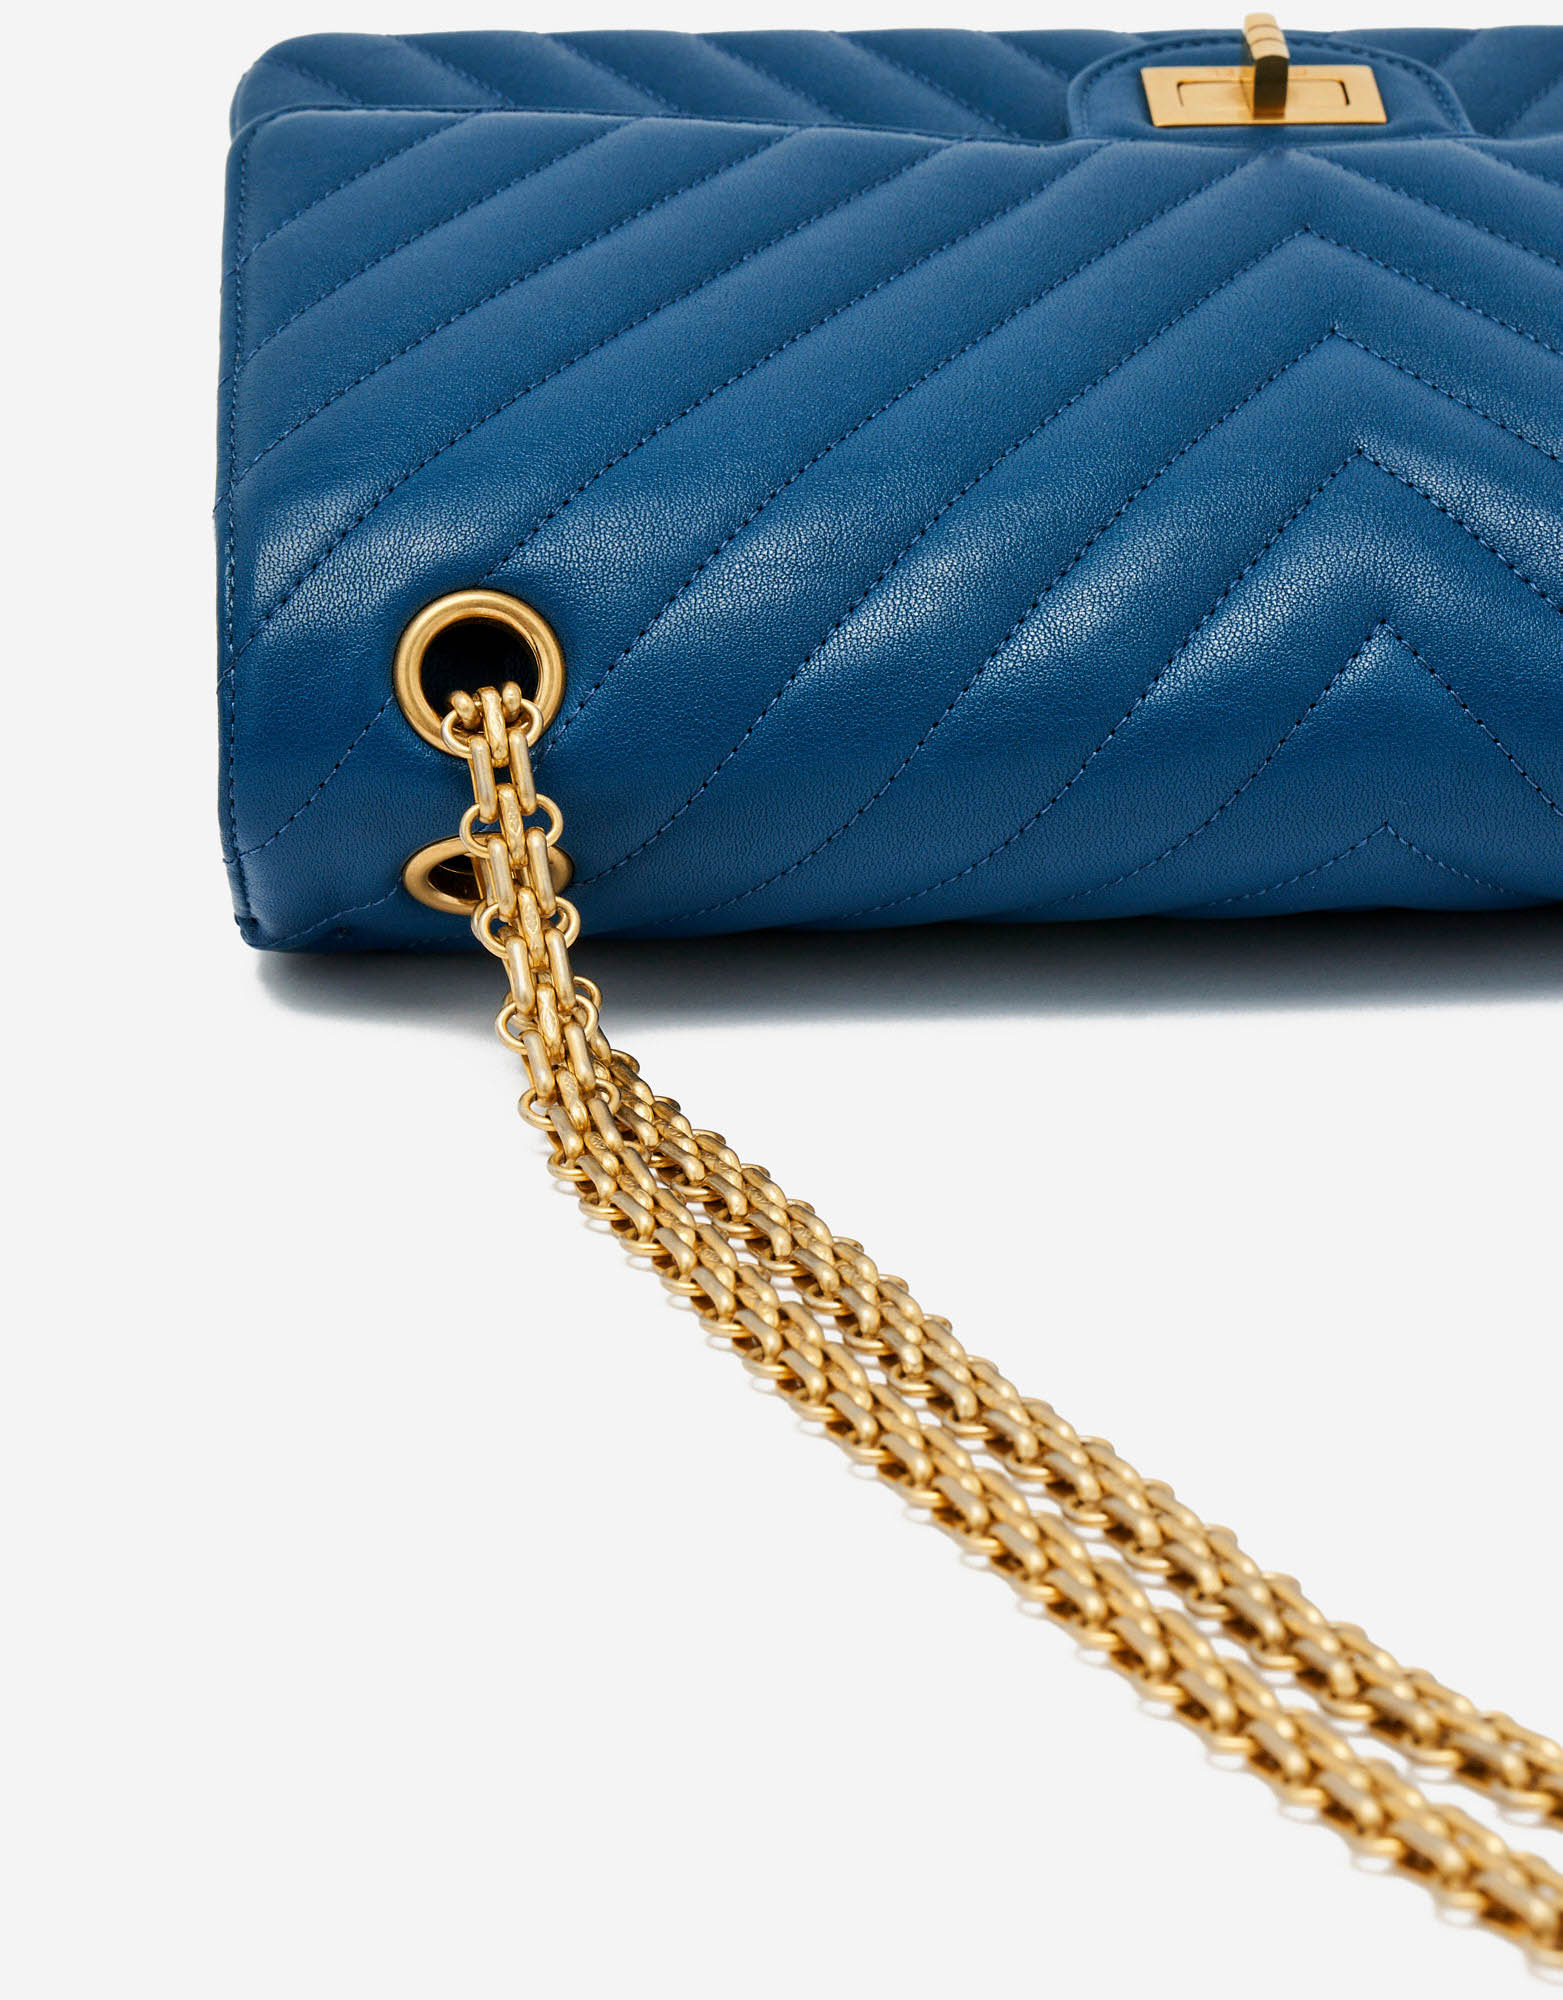 Chain Strap Detail of a Limited-Edition Chanel 2.55 226 in Blue and Pink on SACLÀB